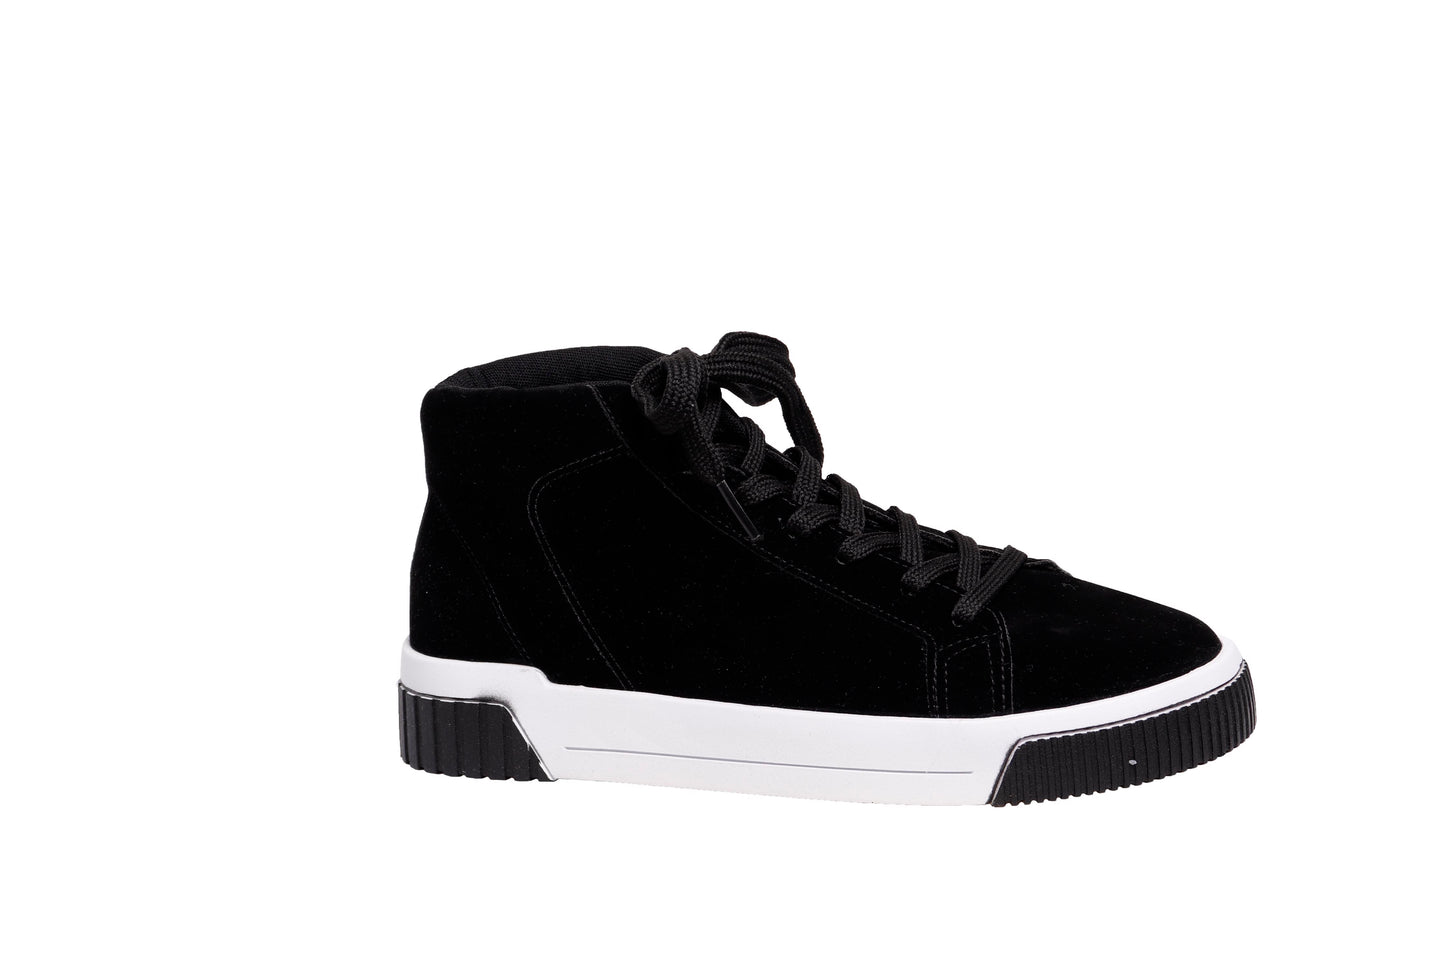 *NEW* Black Suede High-top Sneakers